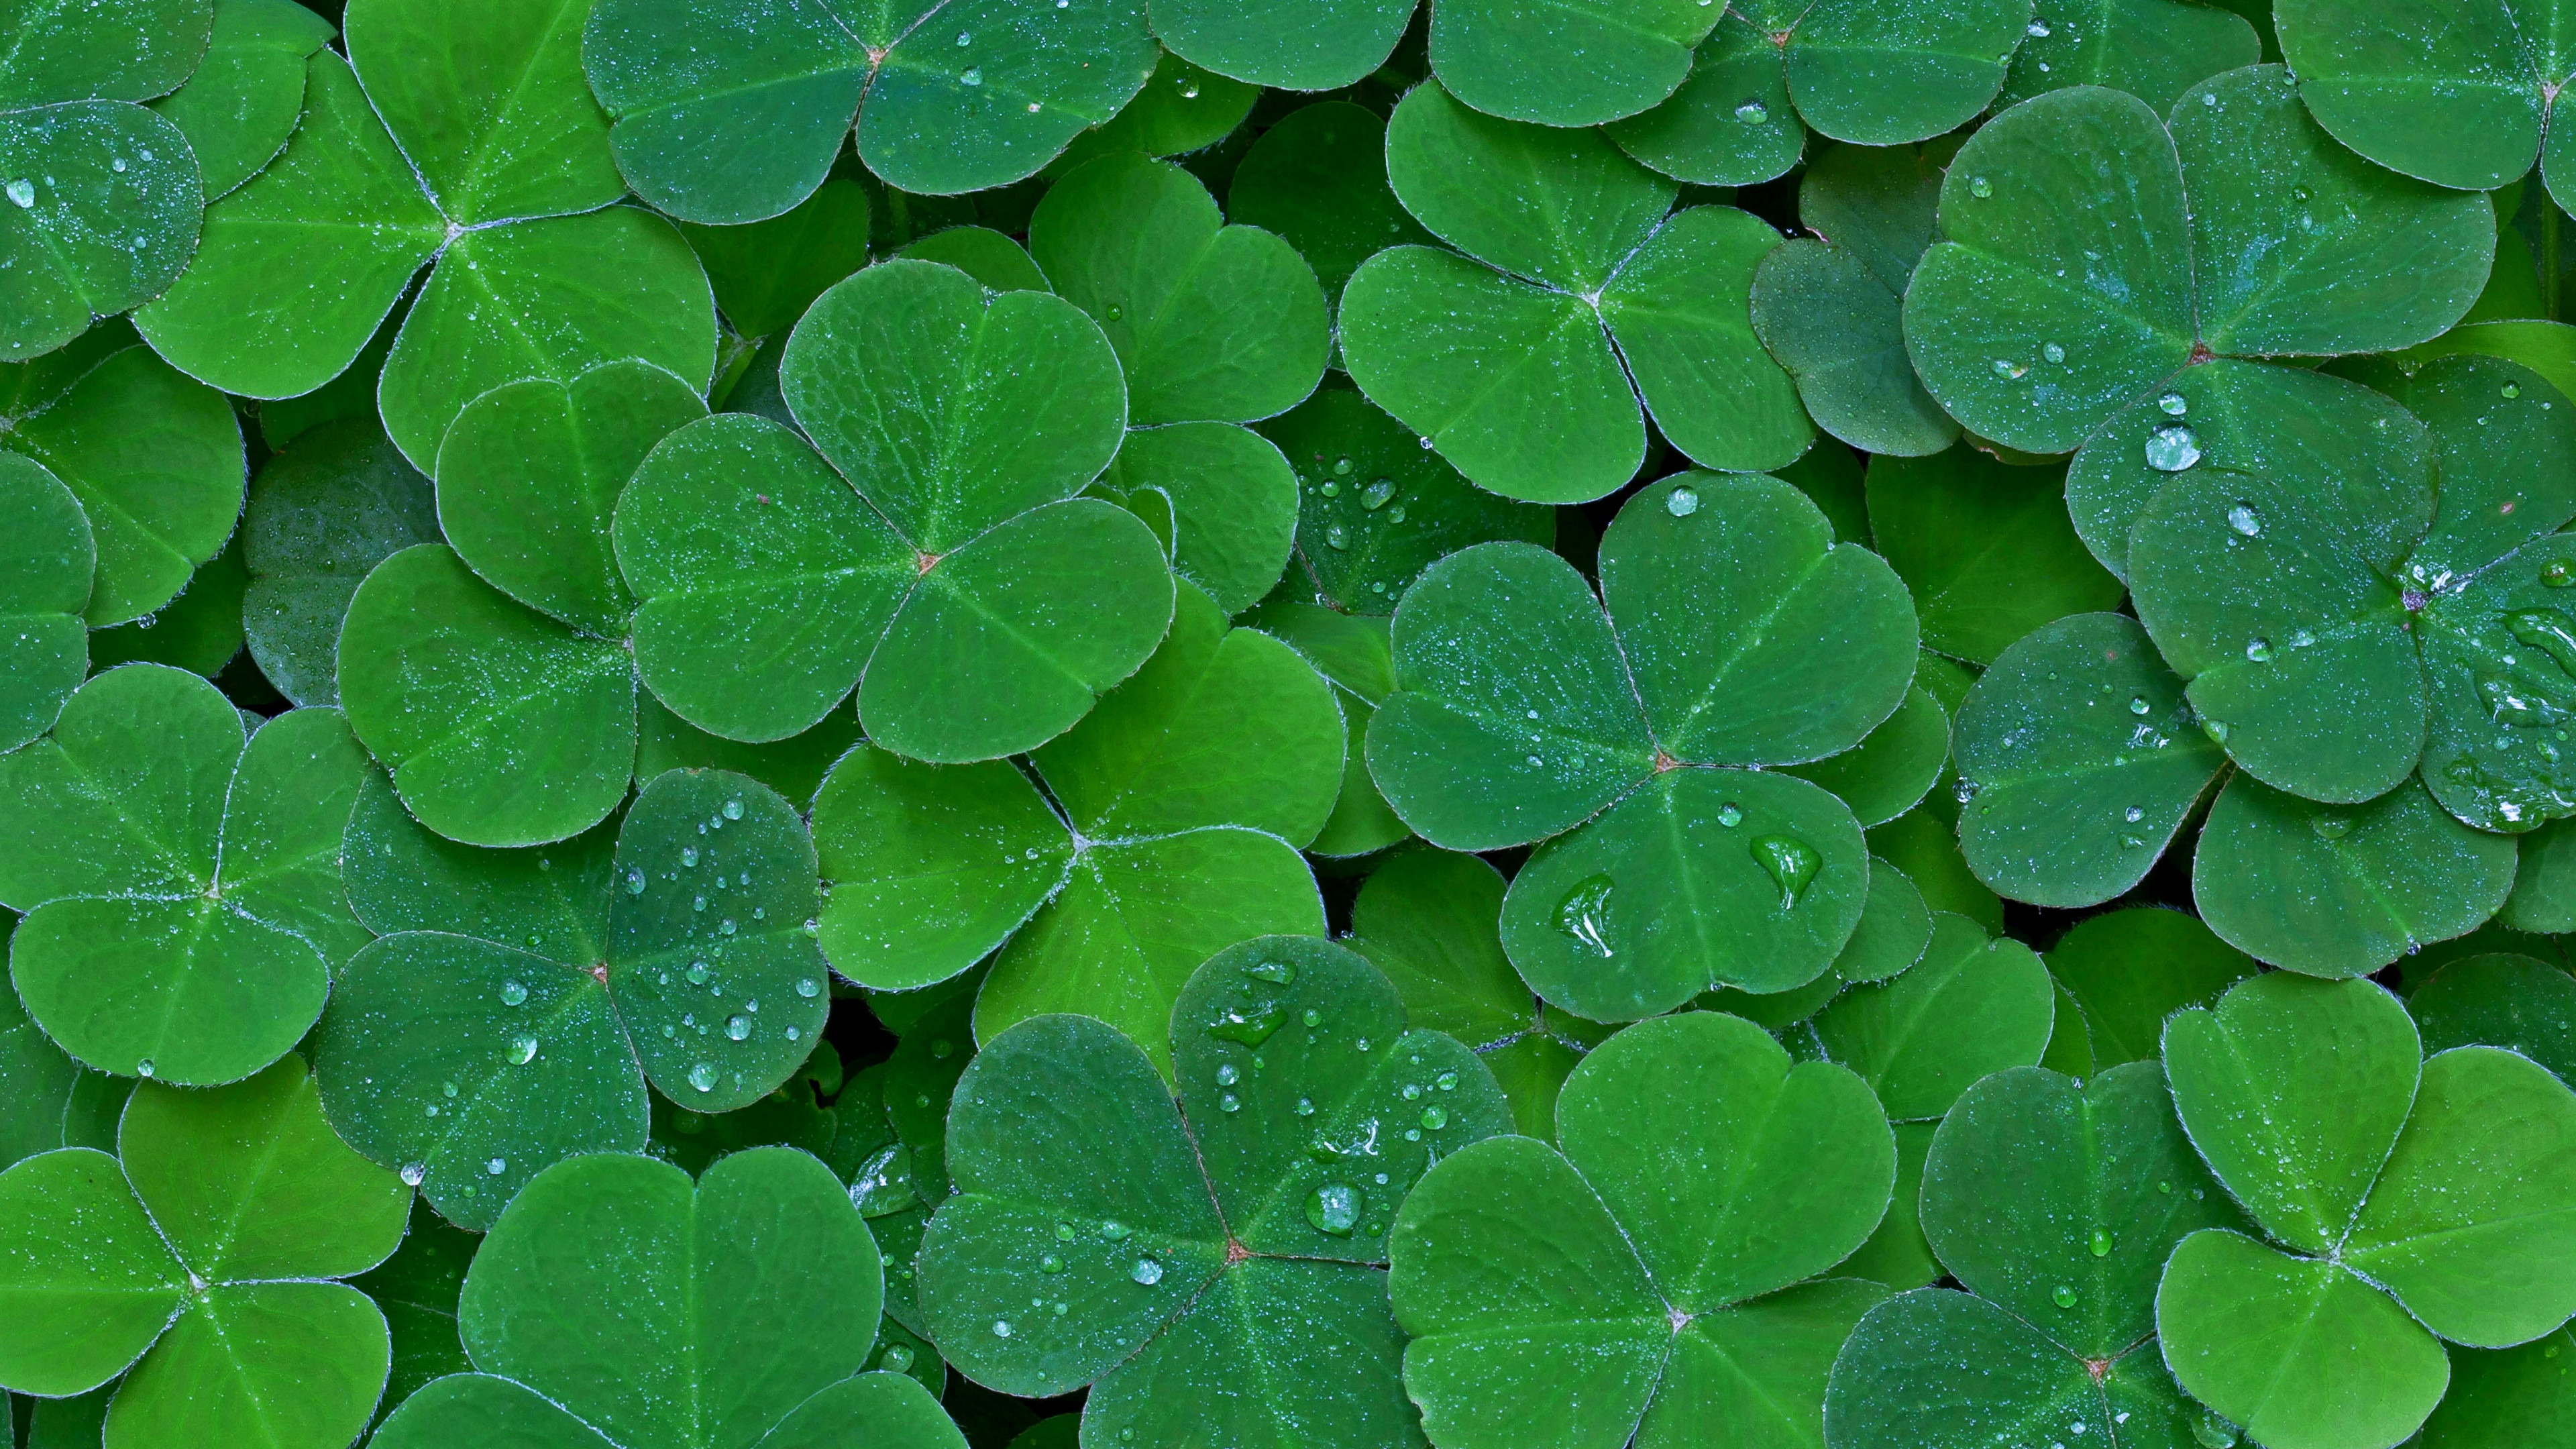 Relaxing HD Wallpapers - Minimal Clover Wallpaper